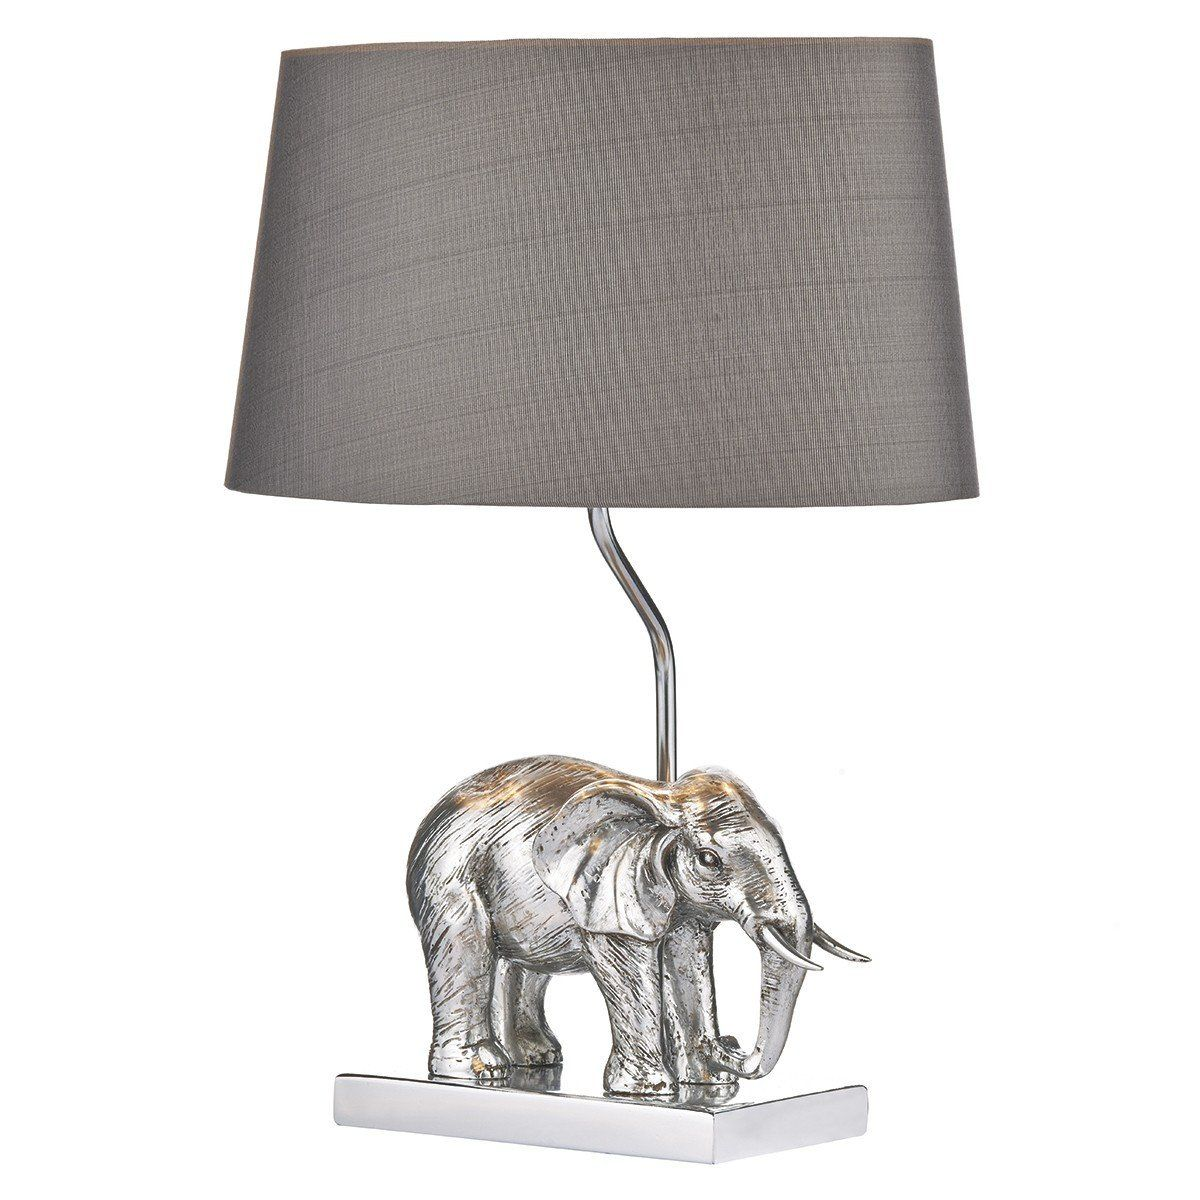 High Quality Safari Inspired Collection, Enrique Table Lamp Silver Complete With Shade